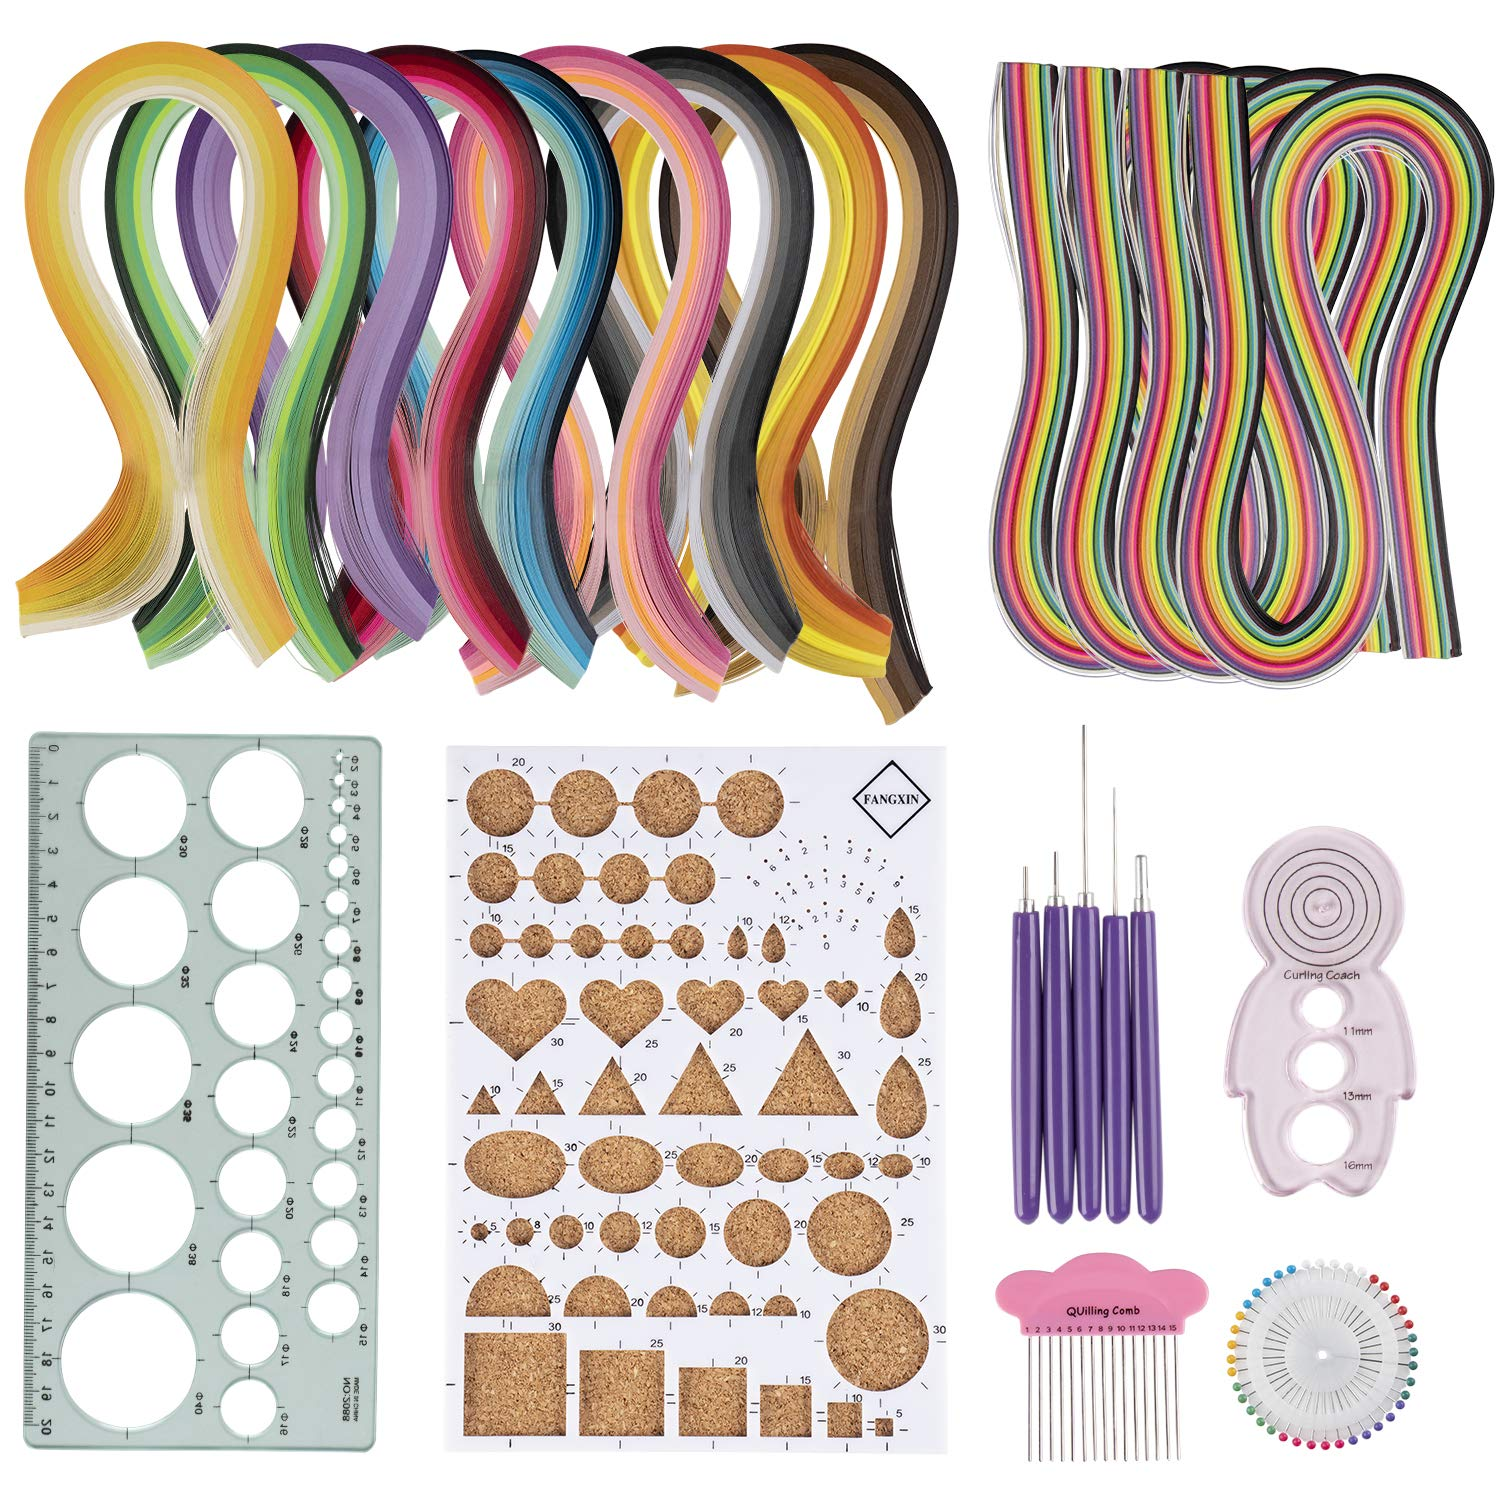 Quilling Kit - 23-in-1 Paper Quilling Set, Includes 9 Gradient Color Strip Set, 4 Rainbow Color Strip Set, Quilling Board, Ruler Template, 5 Awls, Pearl Pin Set, Curling Coach, Comb